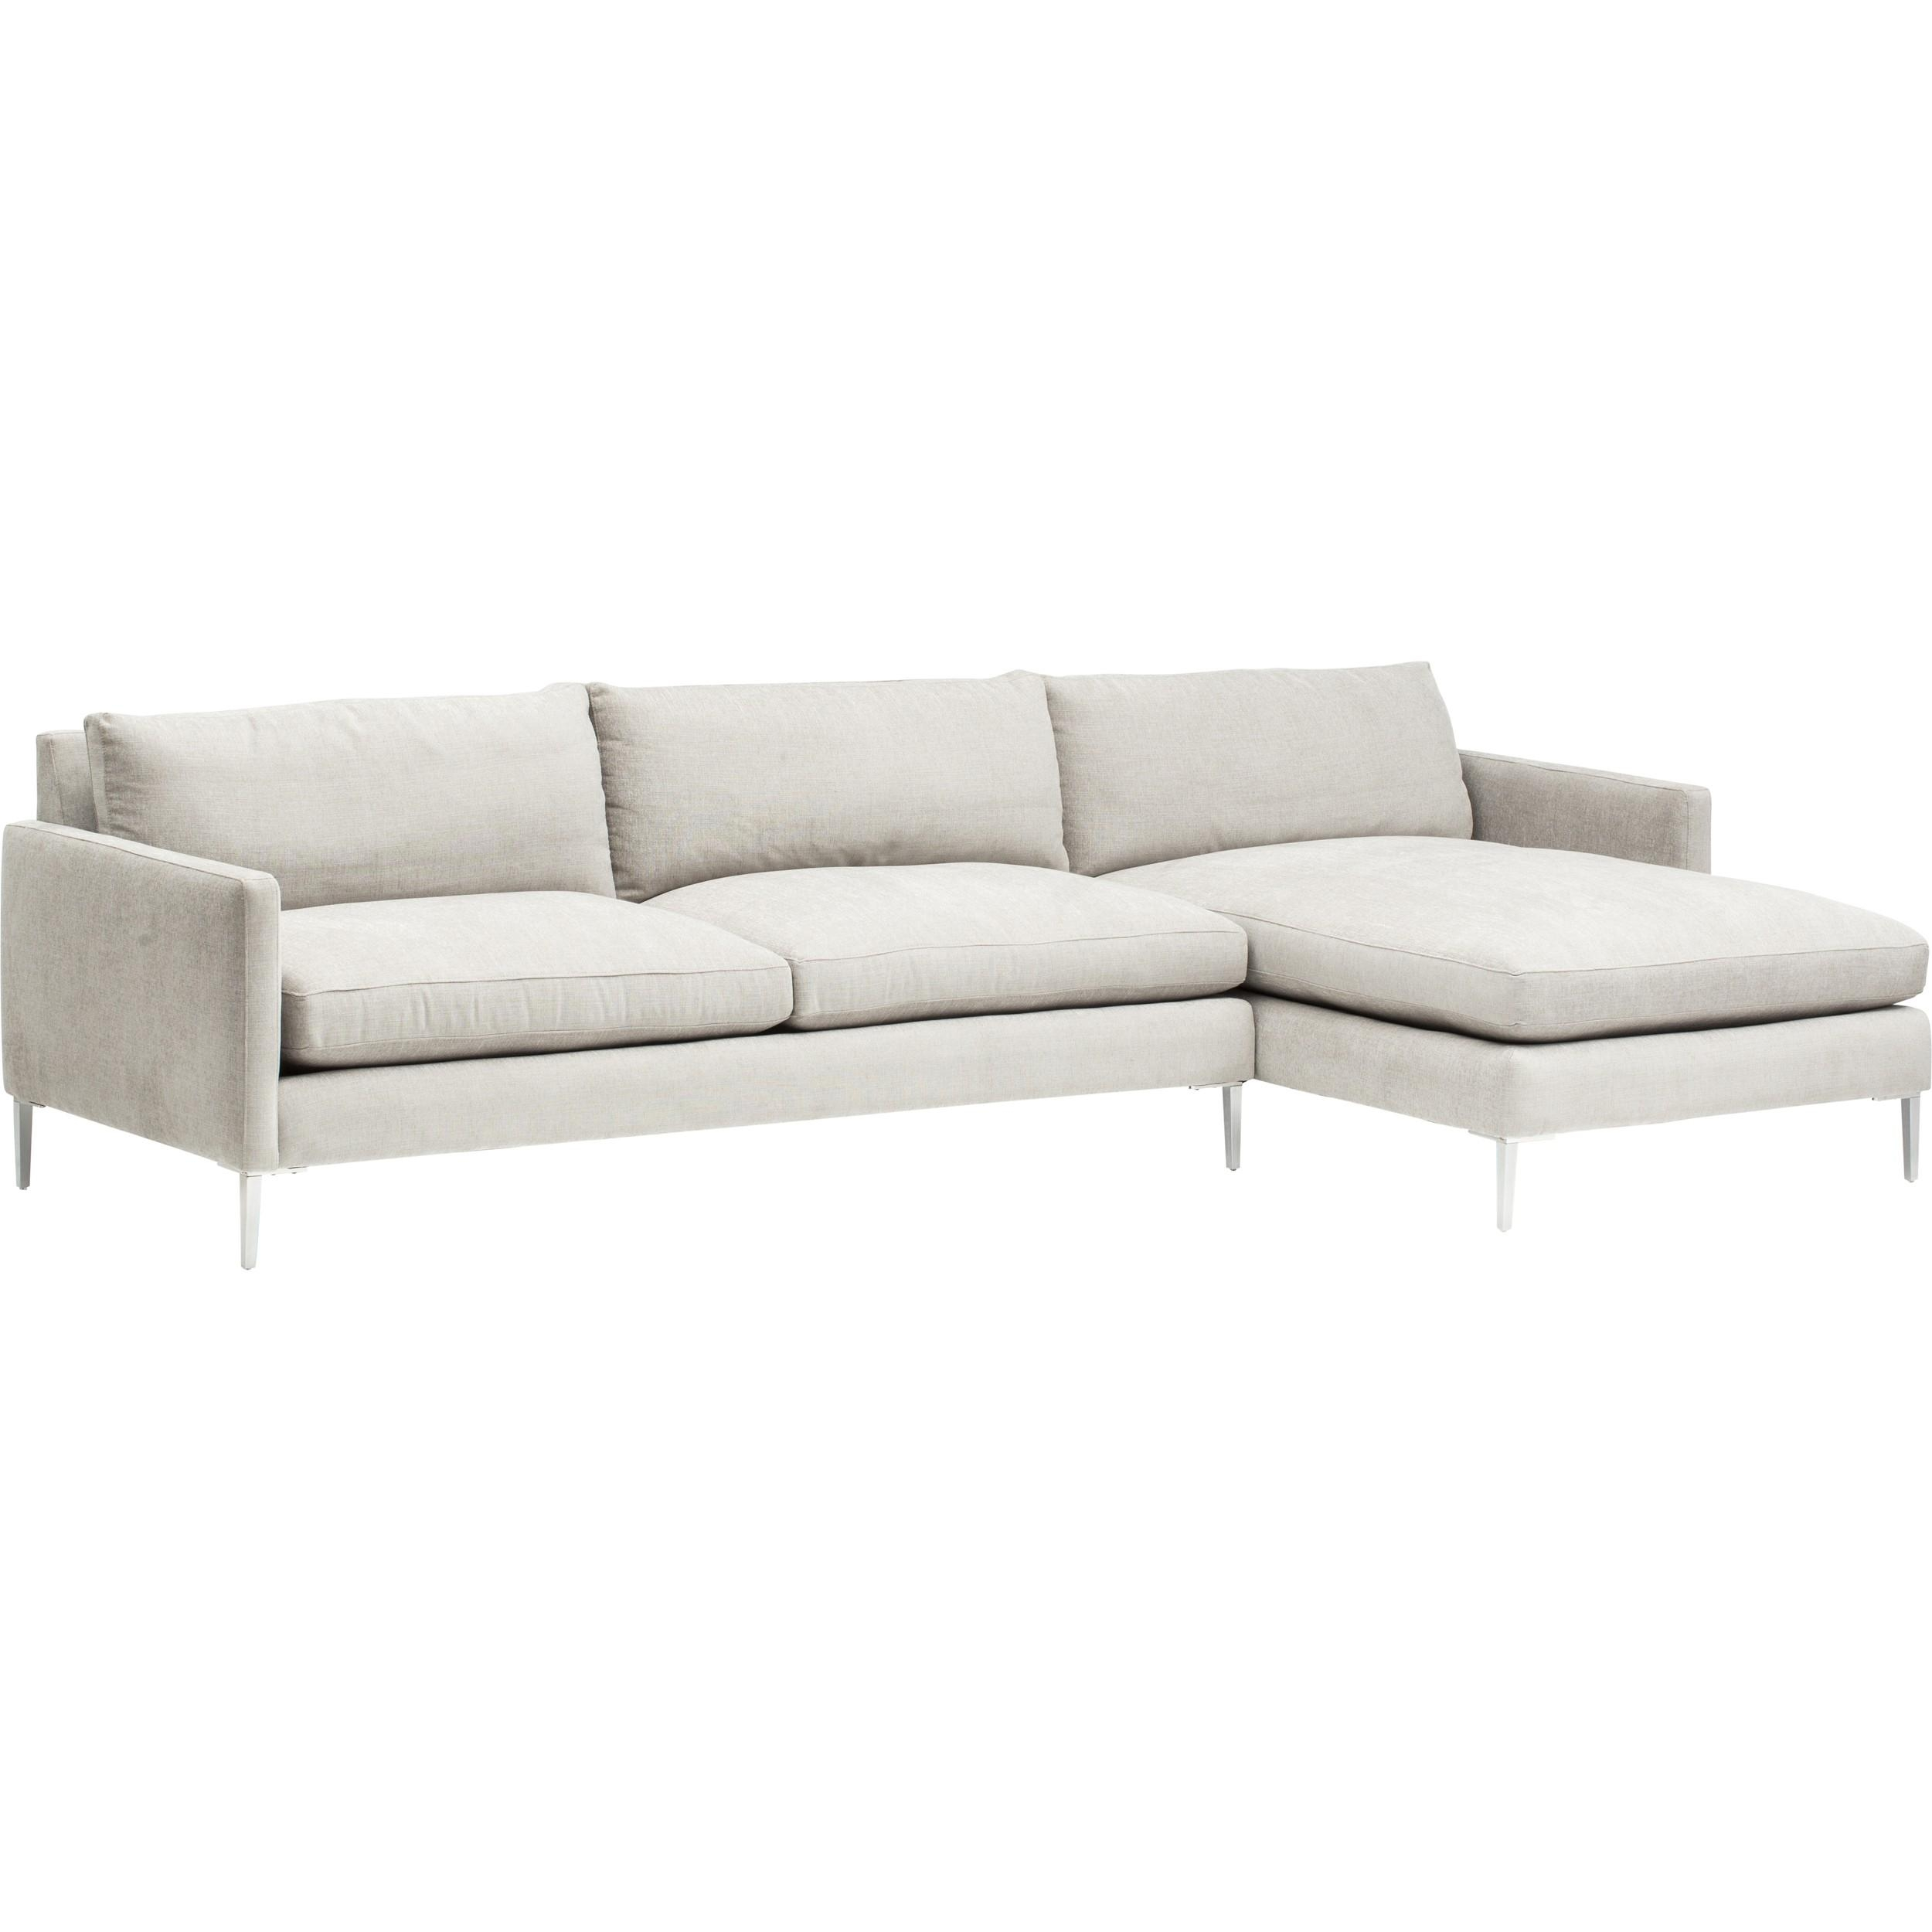 Marshall Sectional, Danville Cloud – Fabric – Sofas – Furniture With Regard To Cloud Sectional Sofas (View 12 of 20)